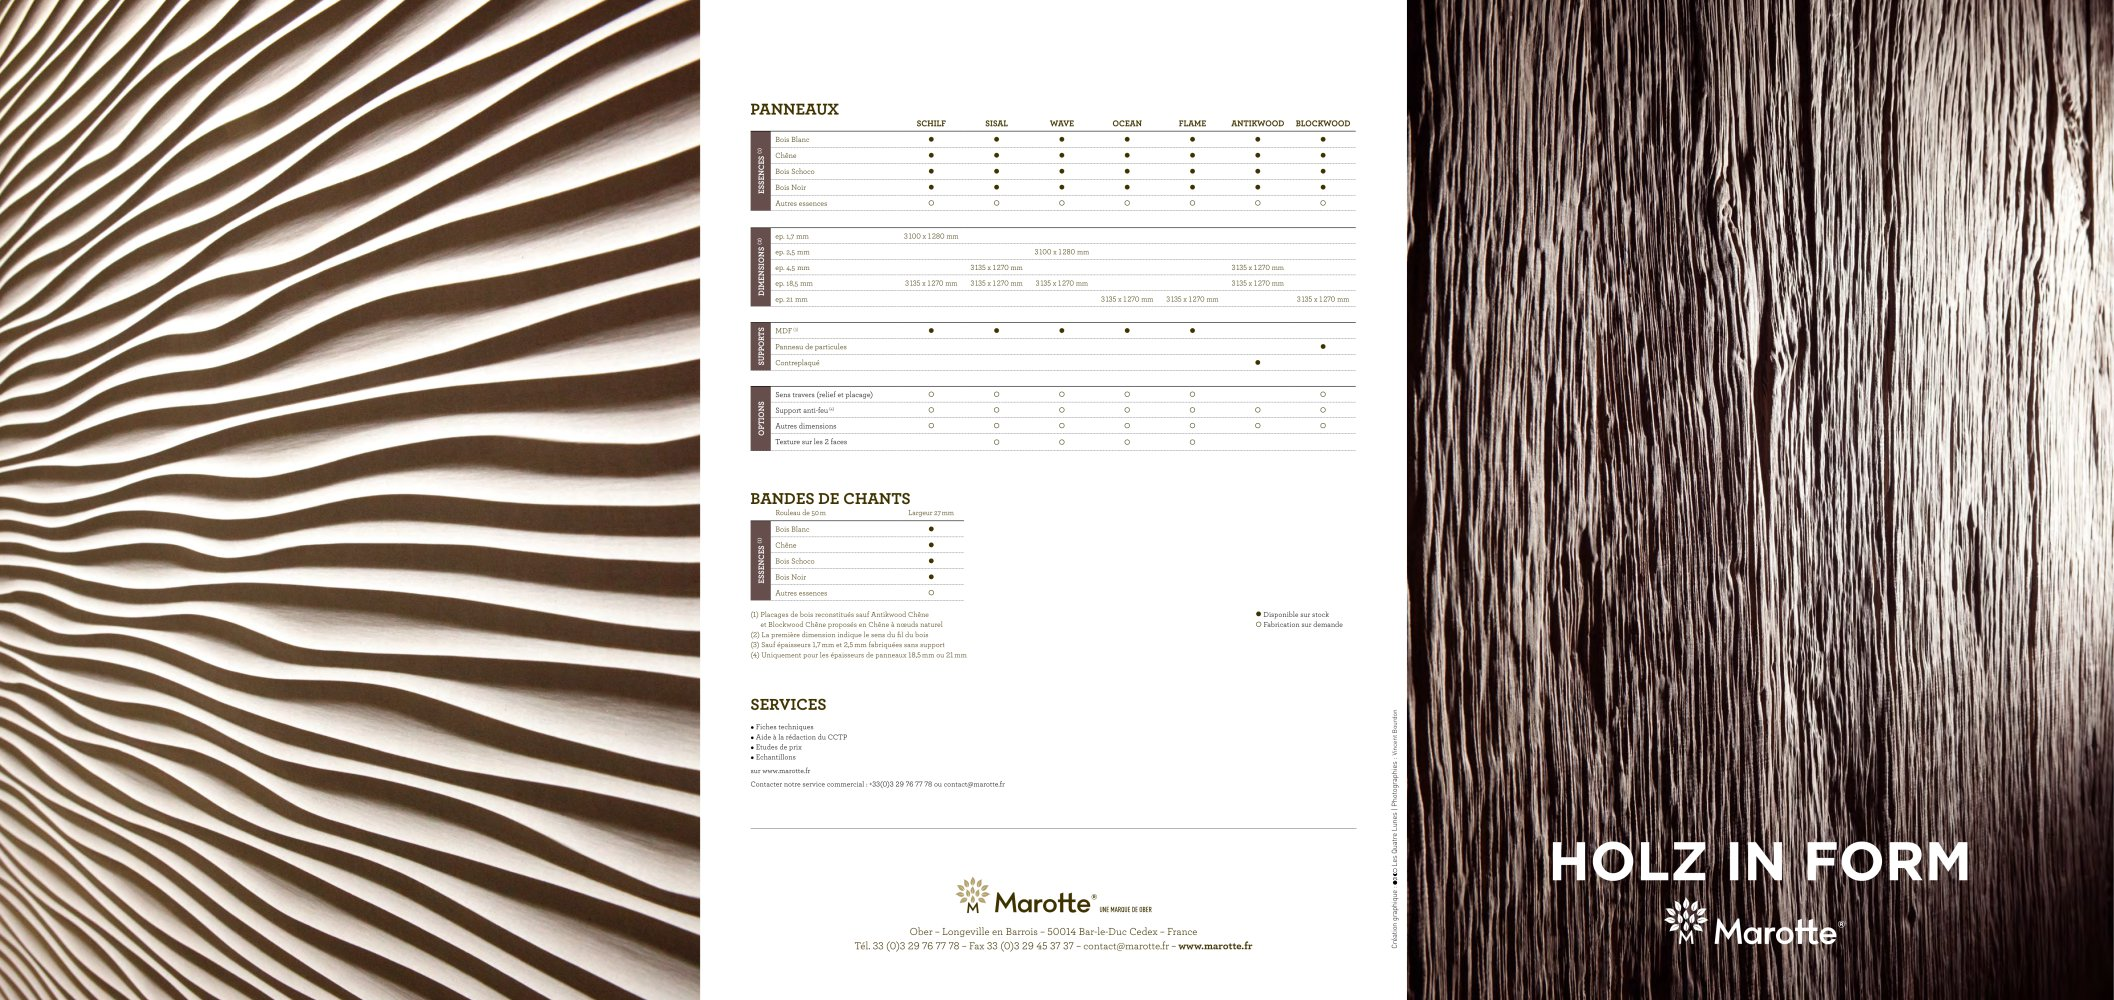 holz in form - marotte - catalogue pdf | documentation | brochure